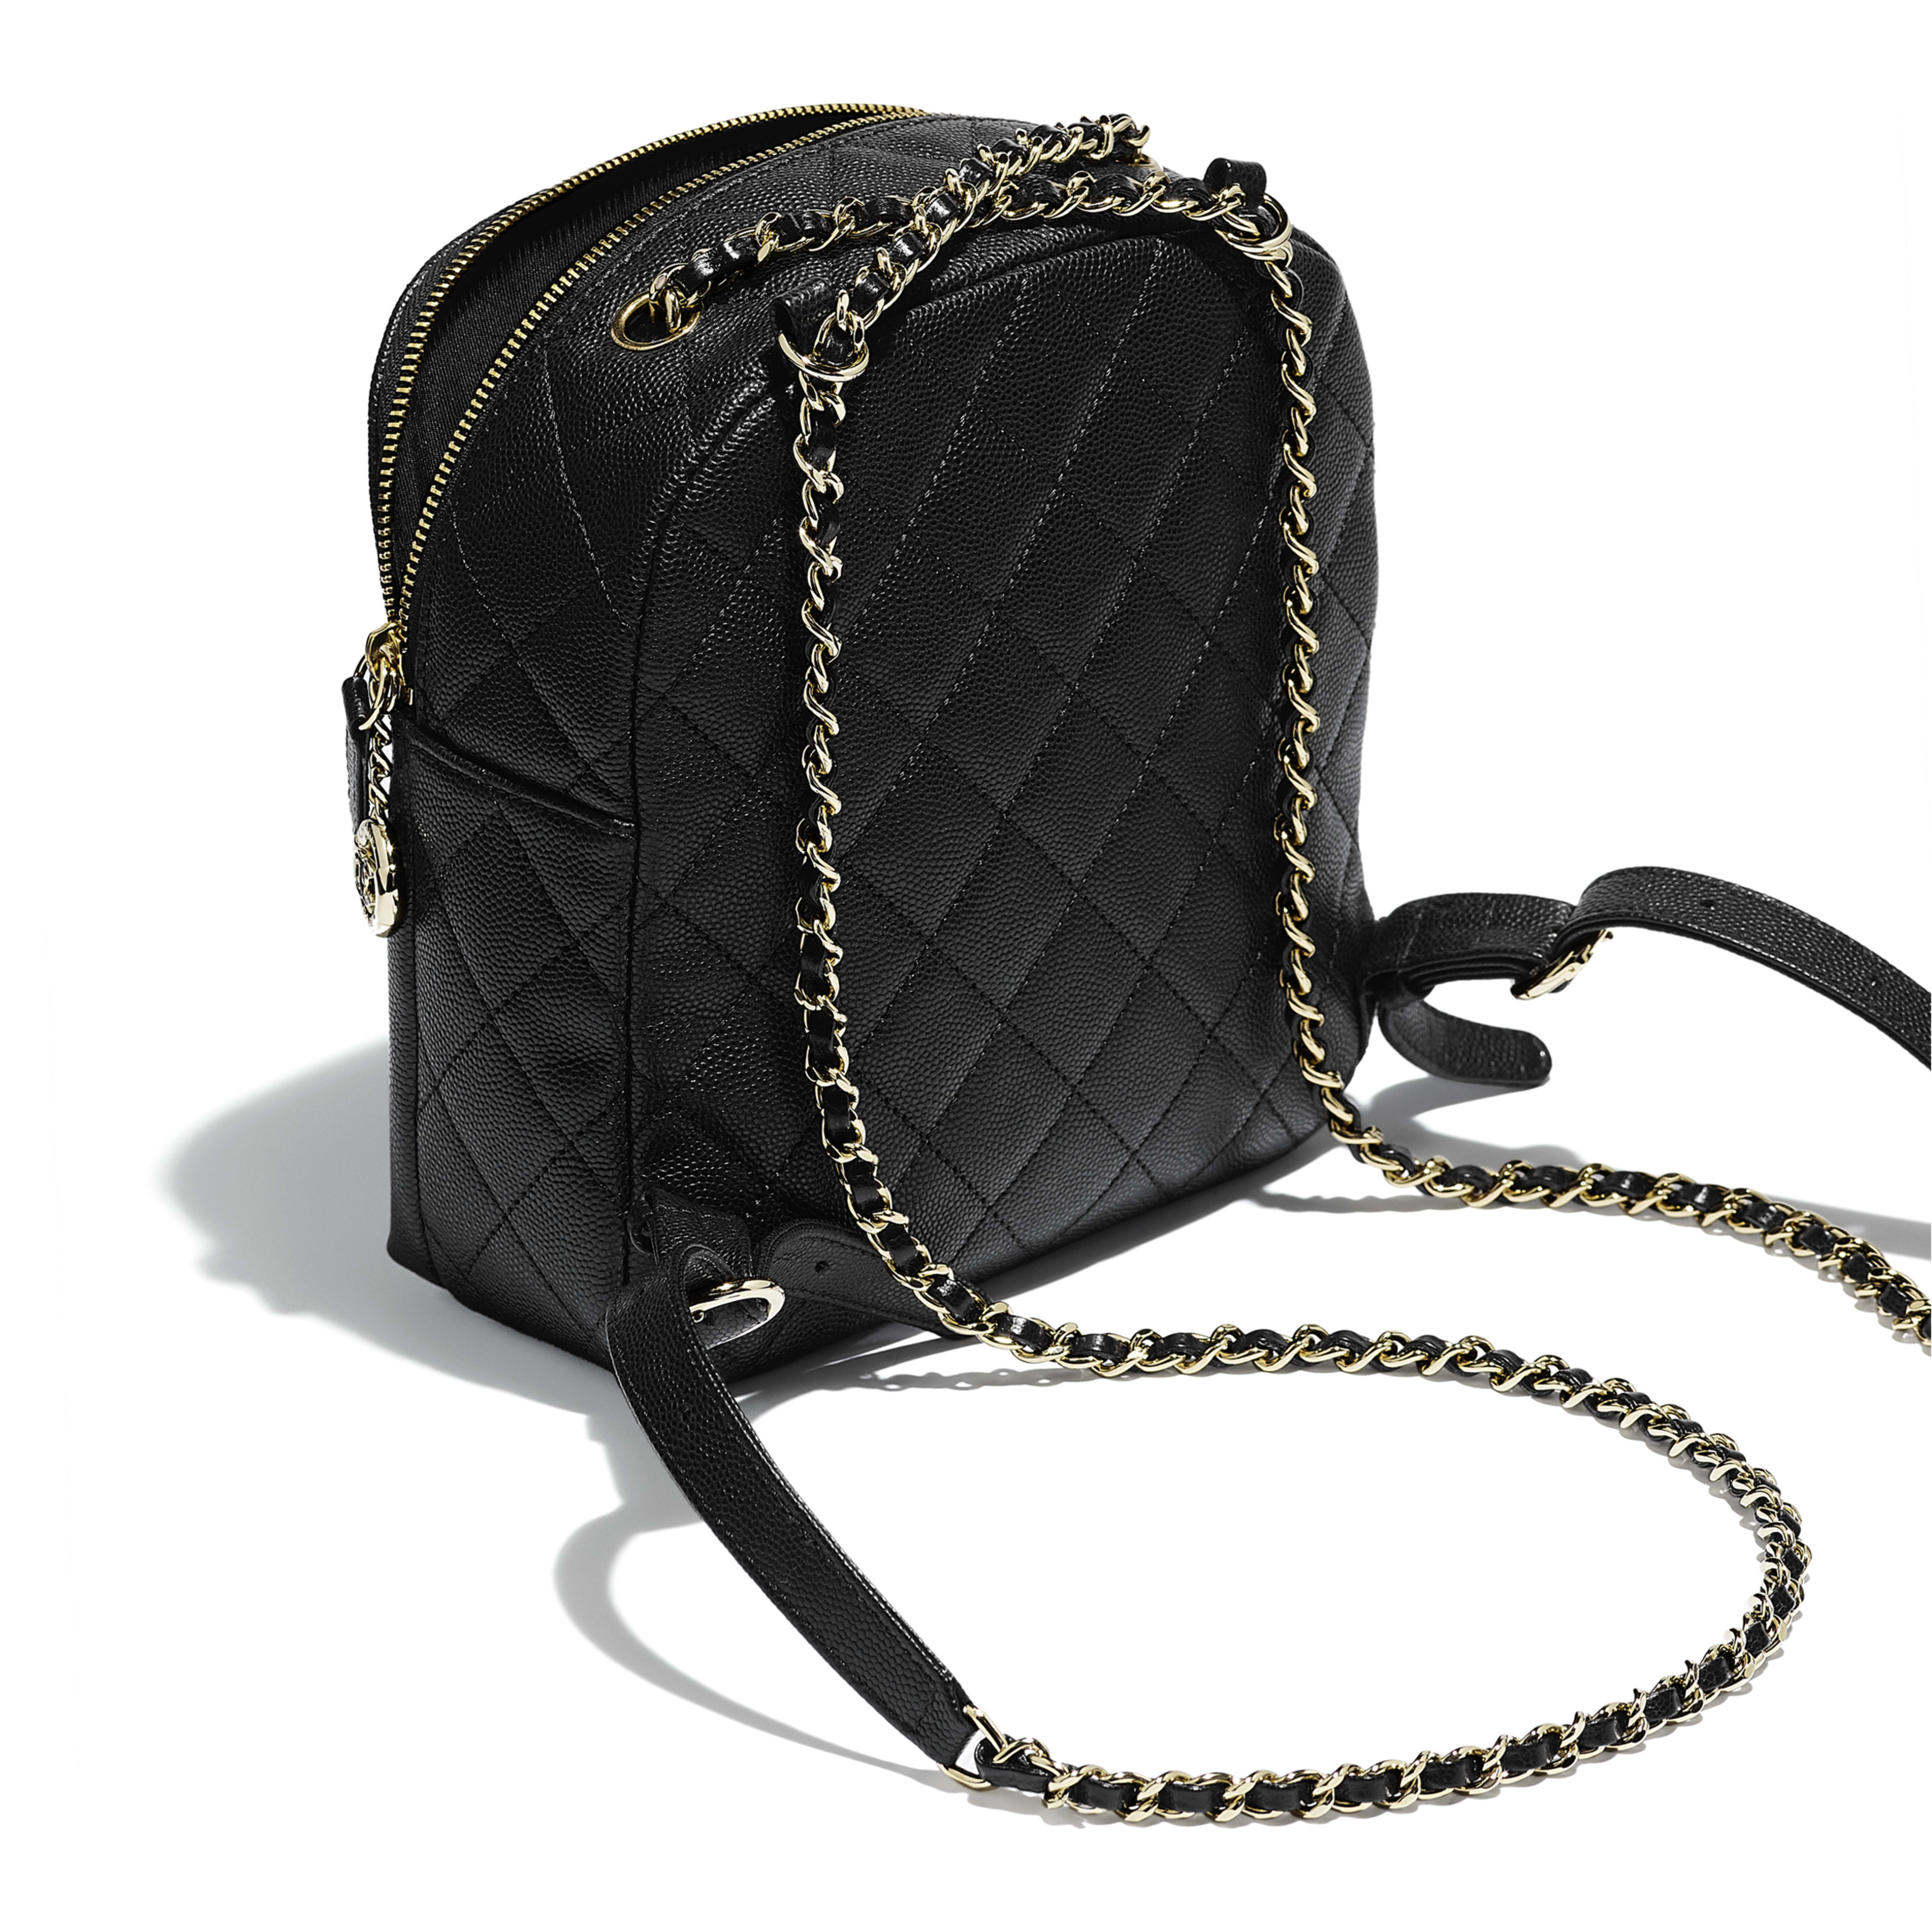 Backpack - Black - Grained Calfskin & Gold-Tone Metal - Other view - see full sized version